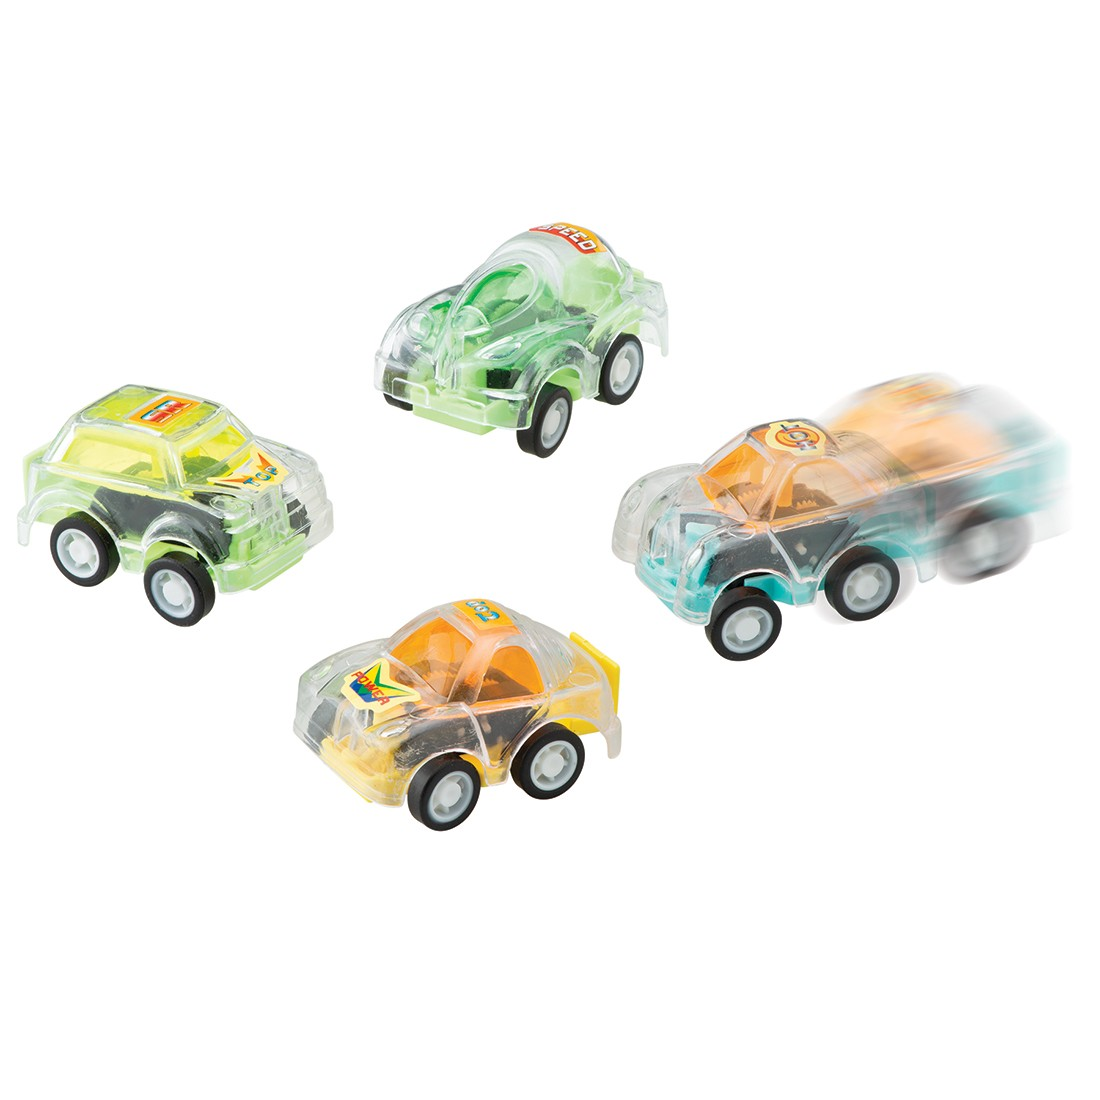 Clear Pullback Cars [image]